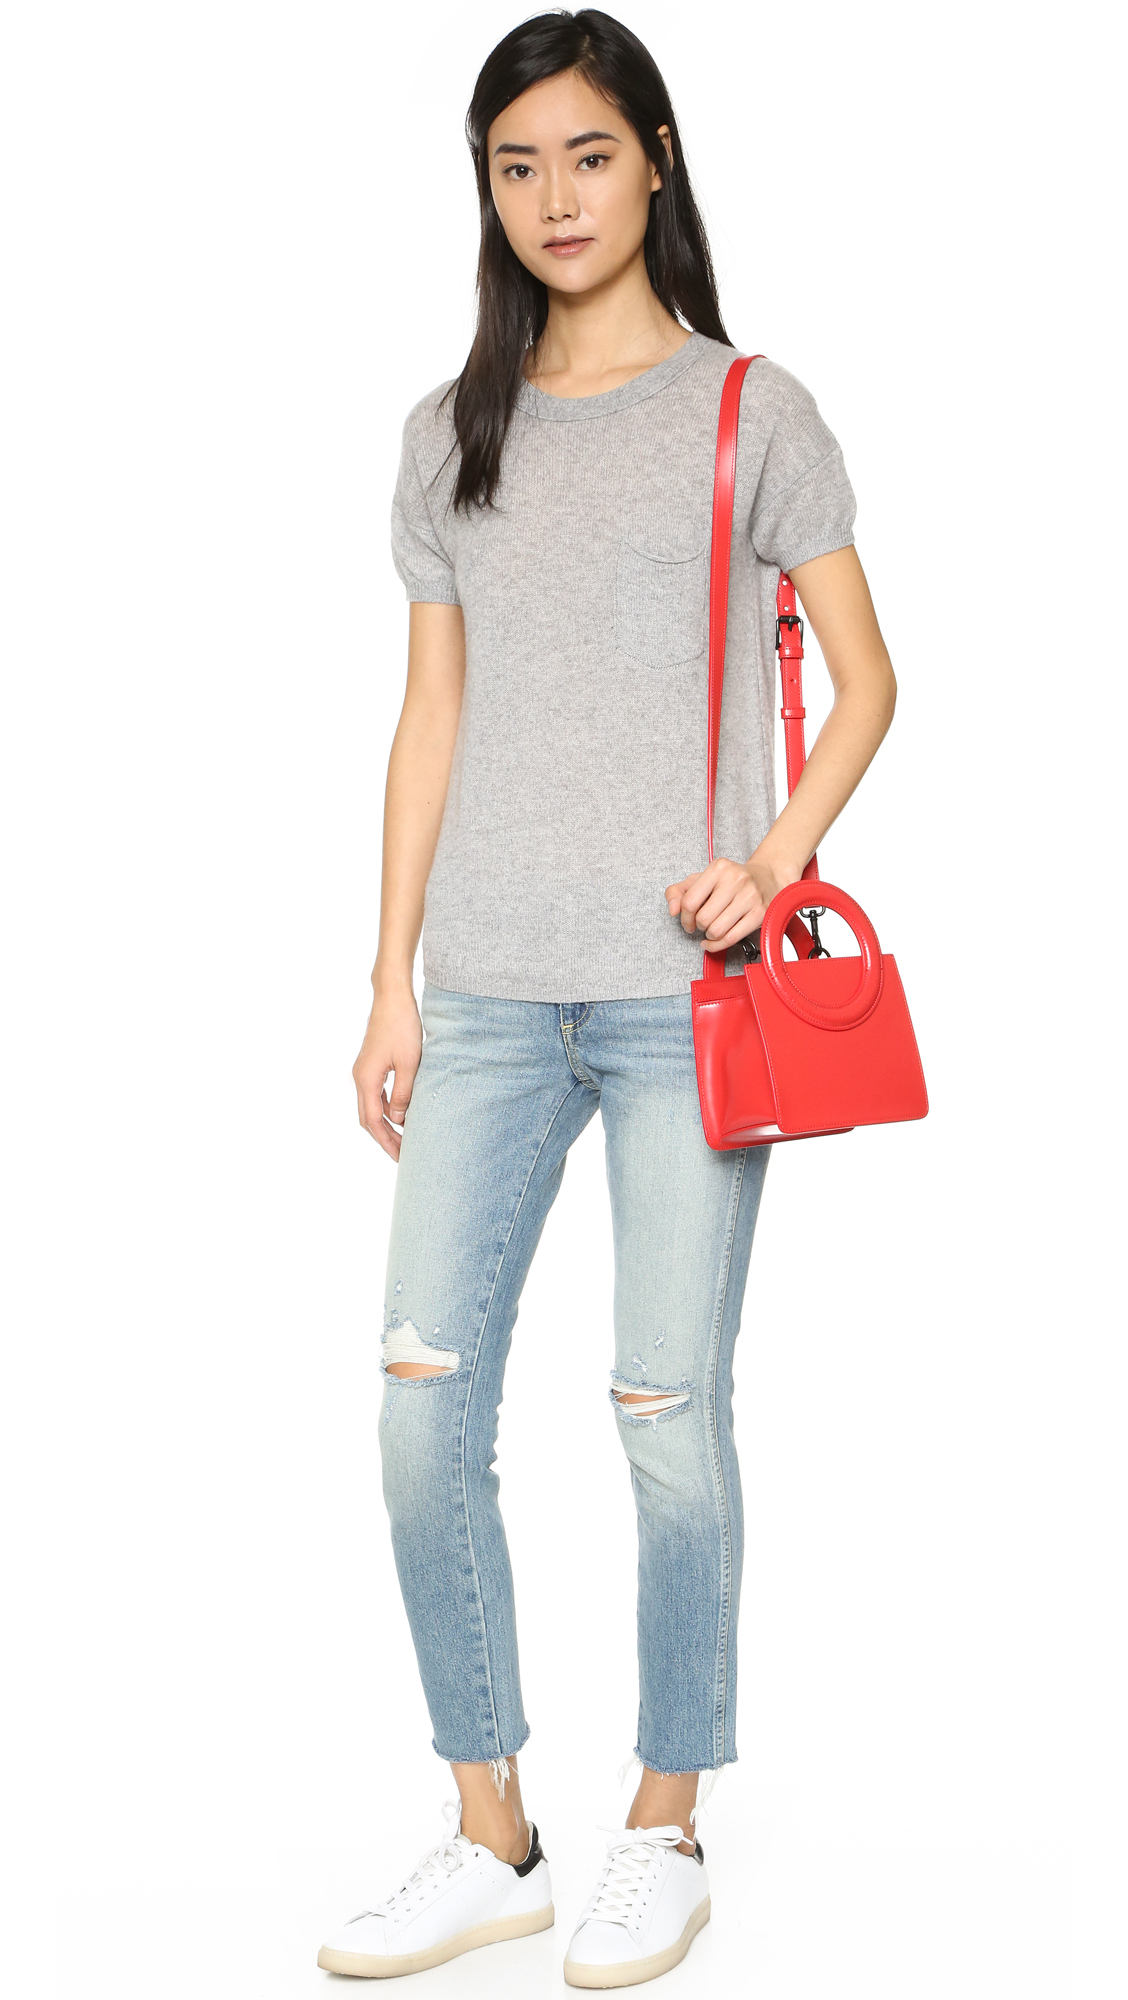 Opening Ceremony Fall 2015: Opening Ceremony Lynx Cross Body Bag In Red